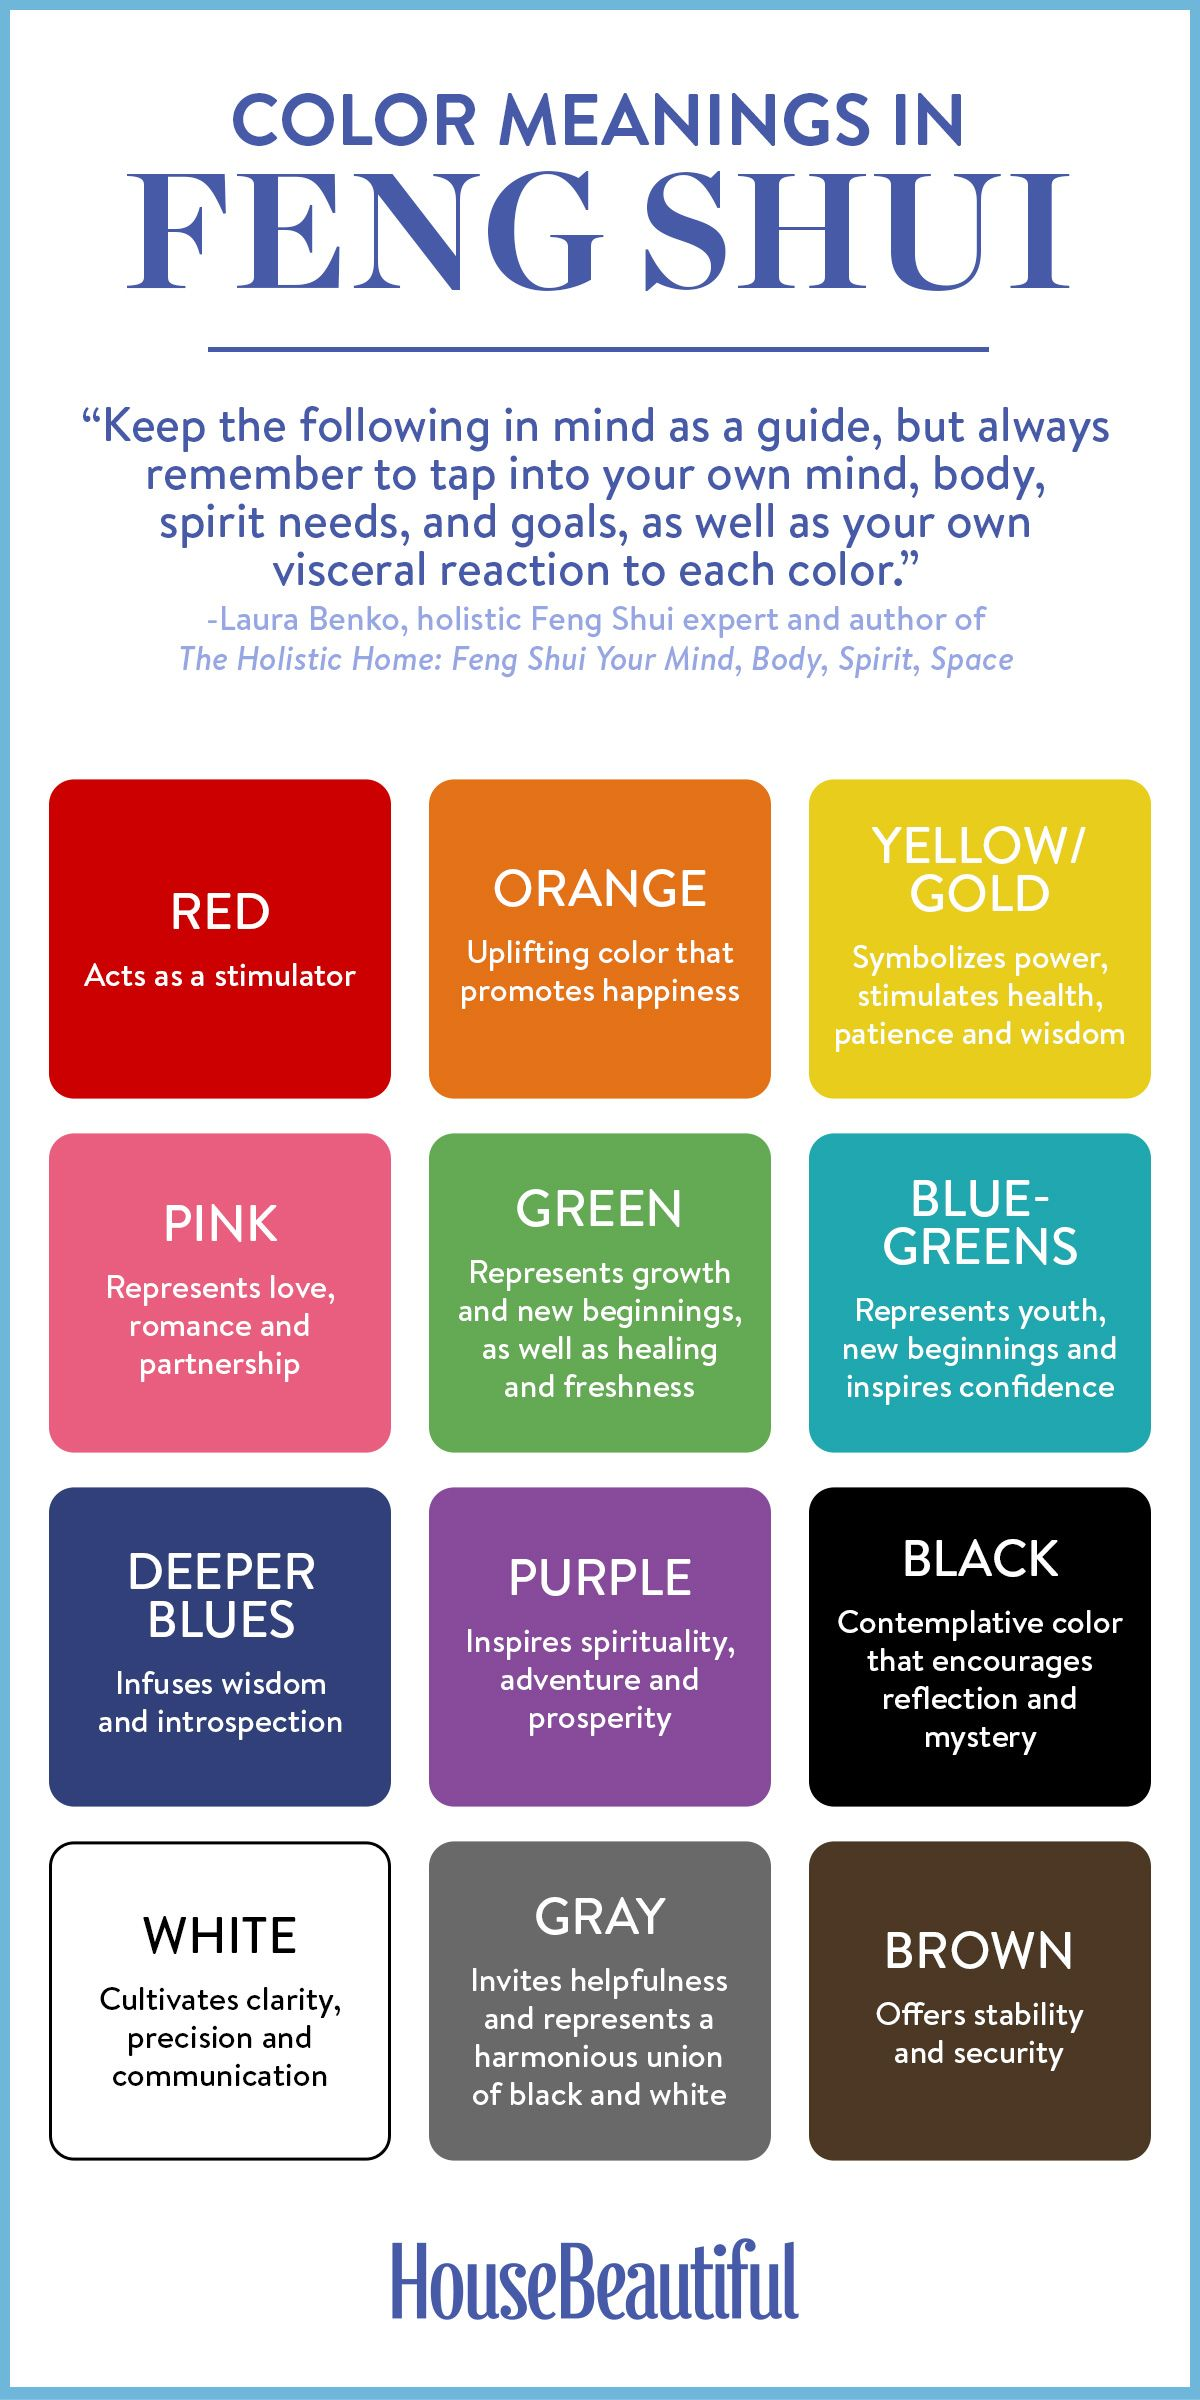 bedroom color meanings how to choose the color the feng shui way feng 10332